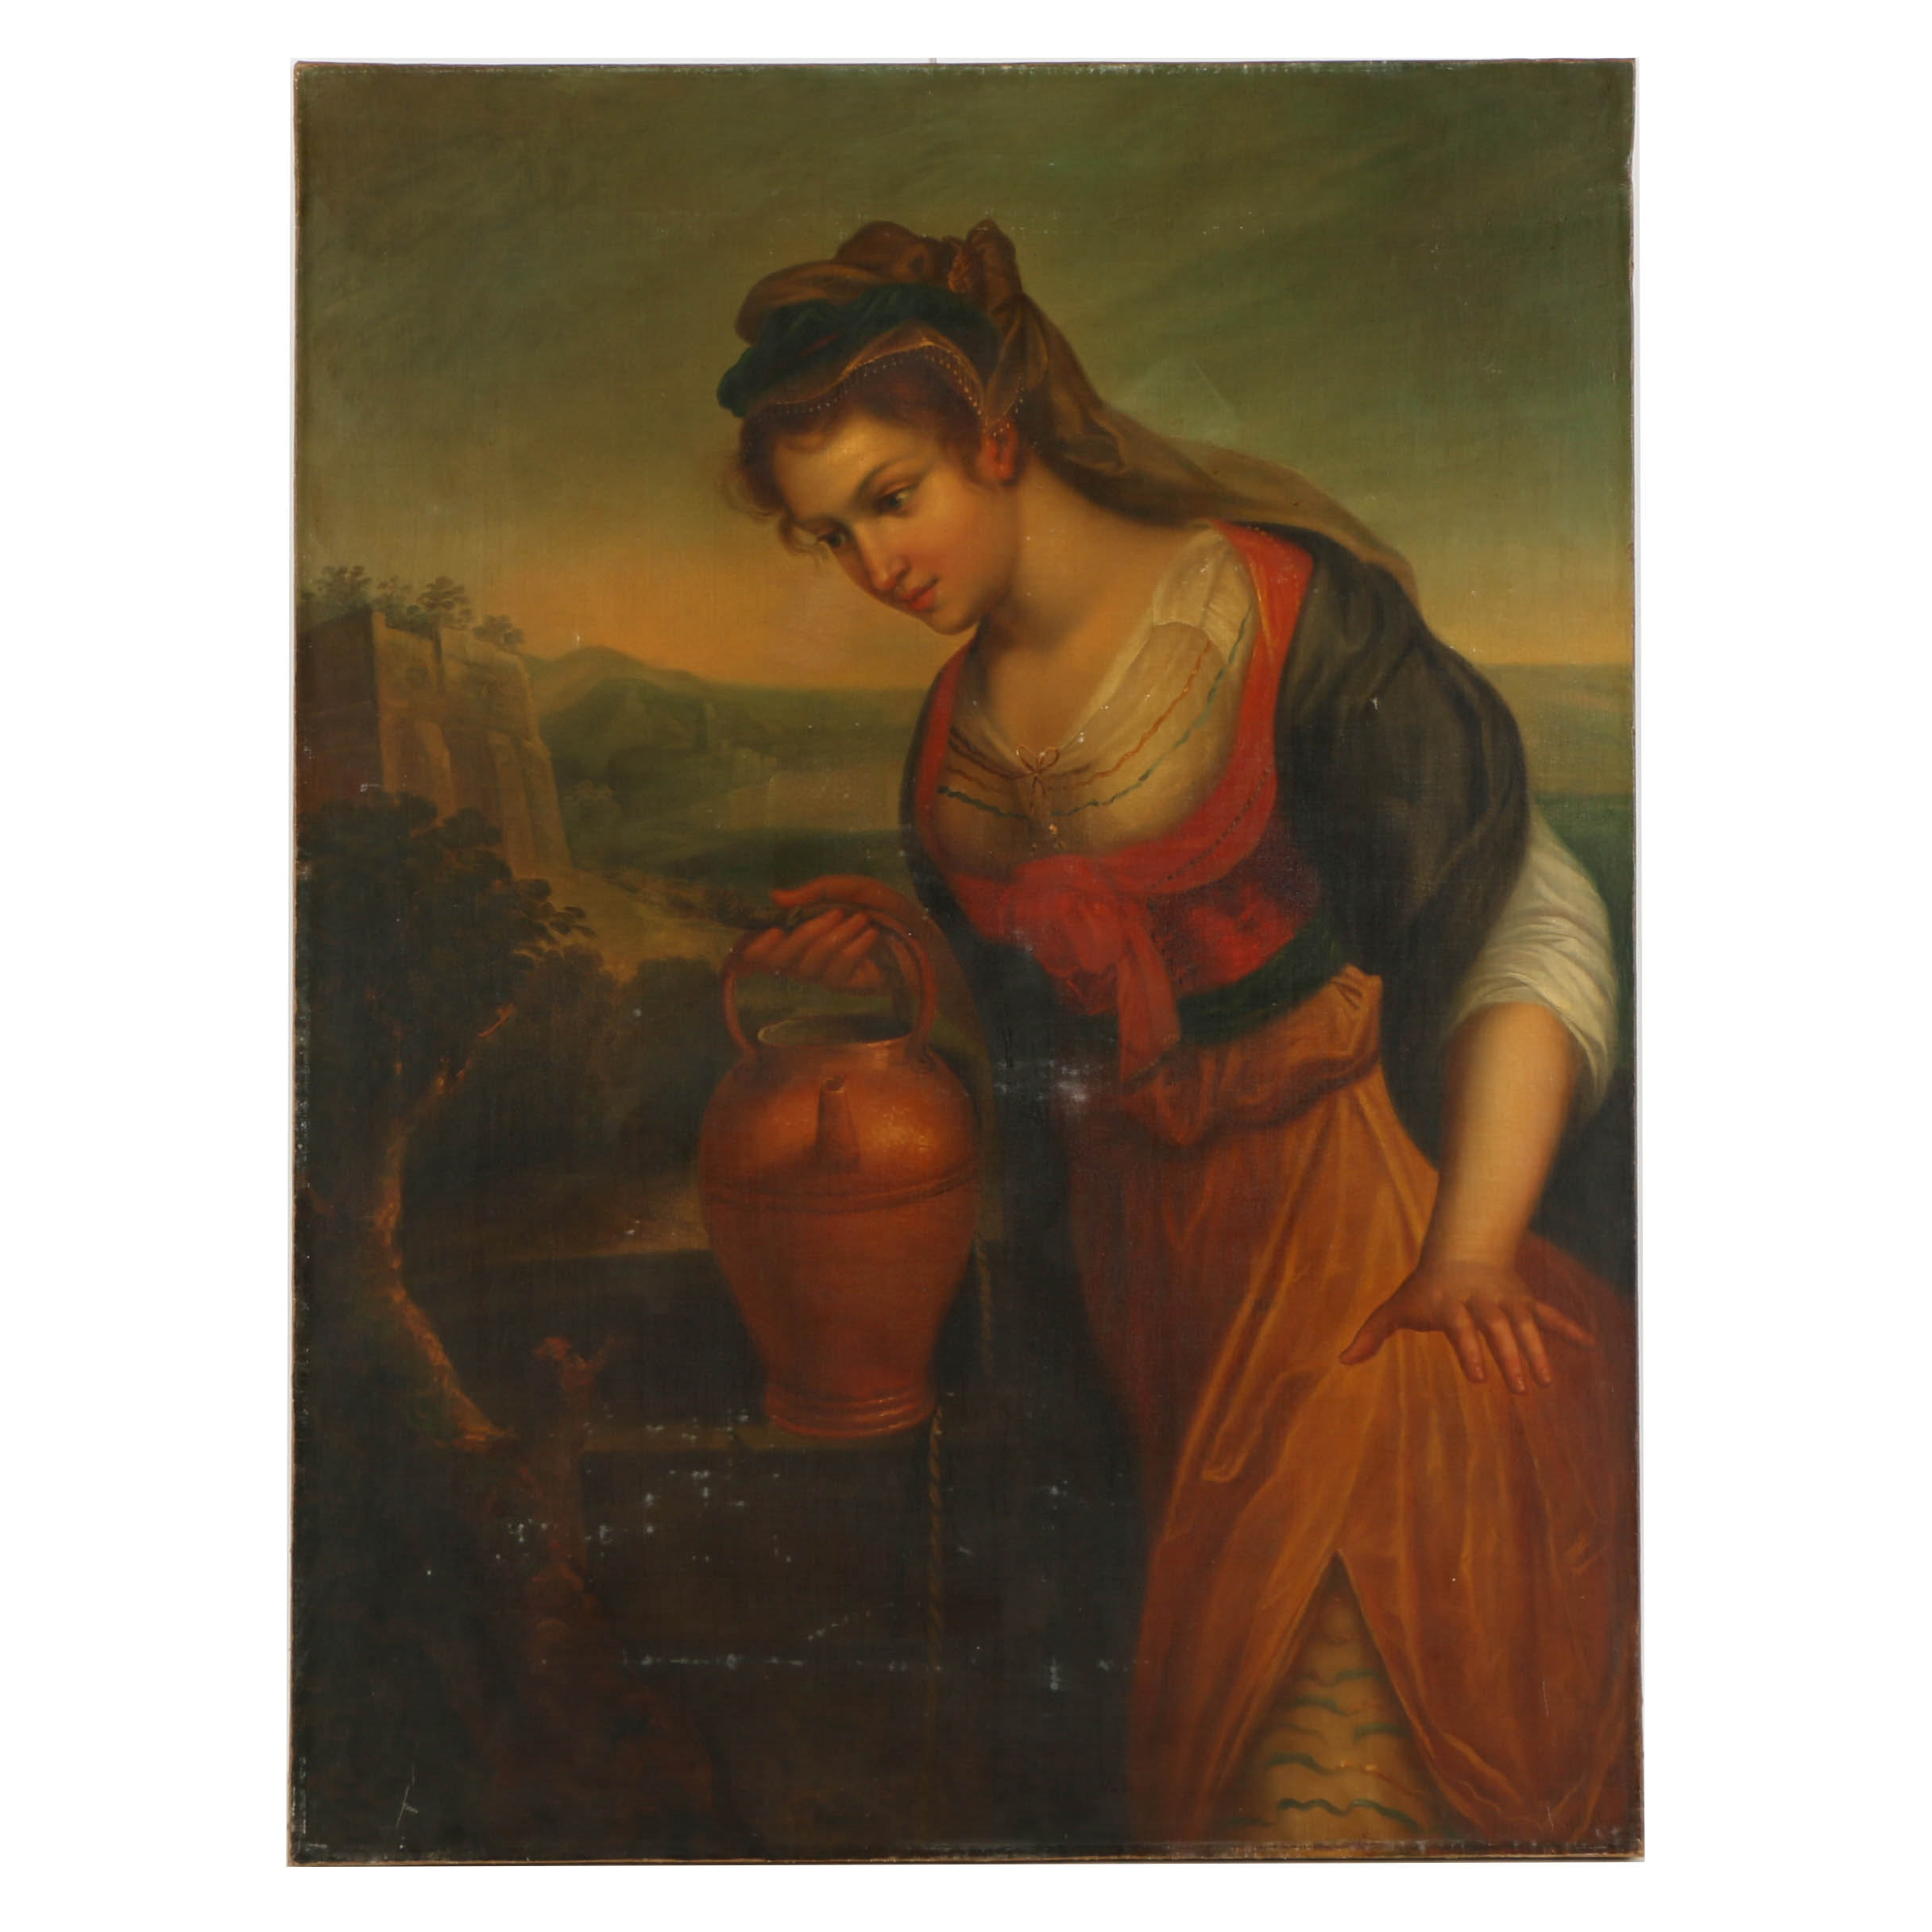 Oil Painting on Canvas of the Samaritan Woman at the Well